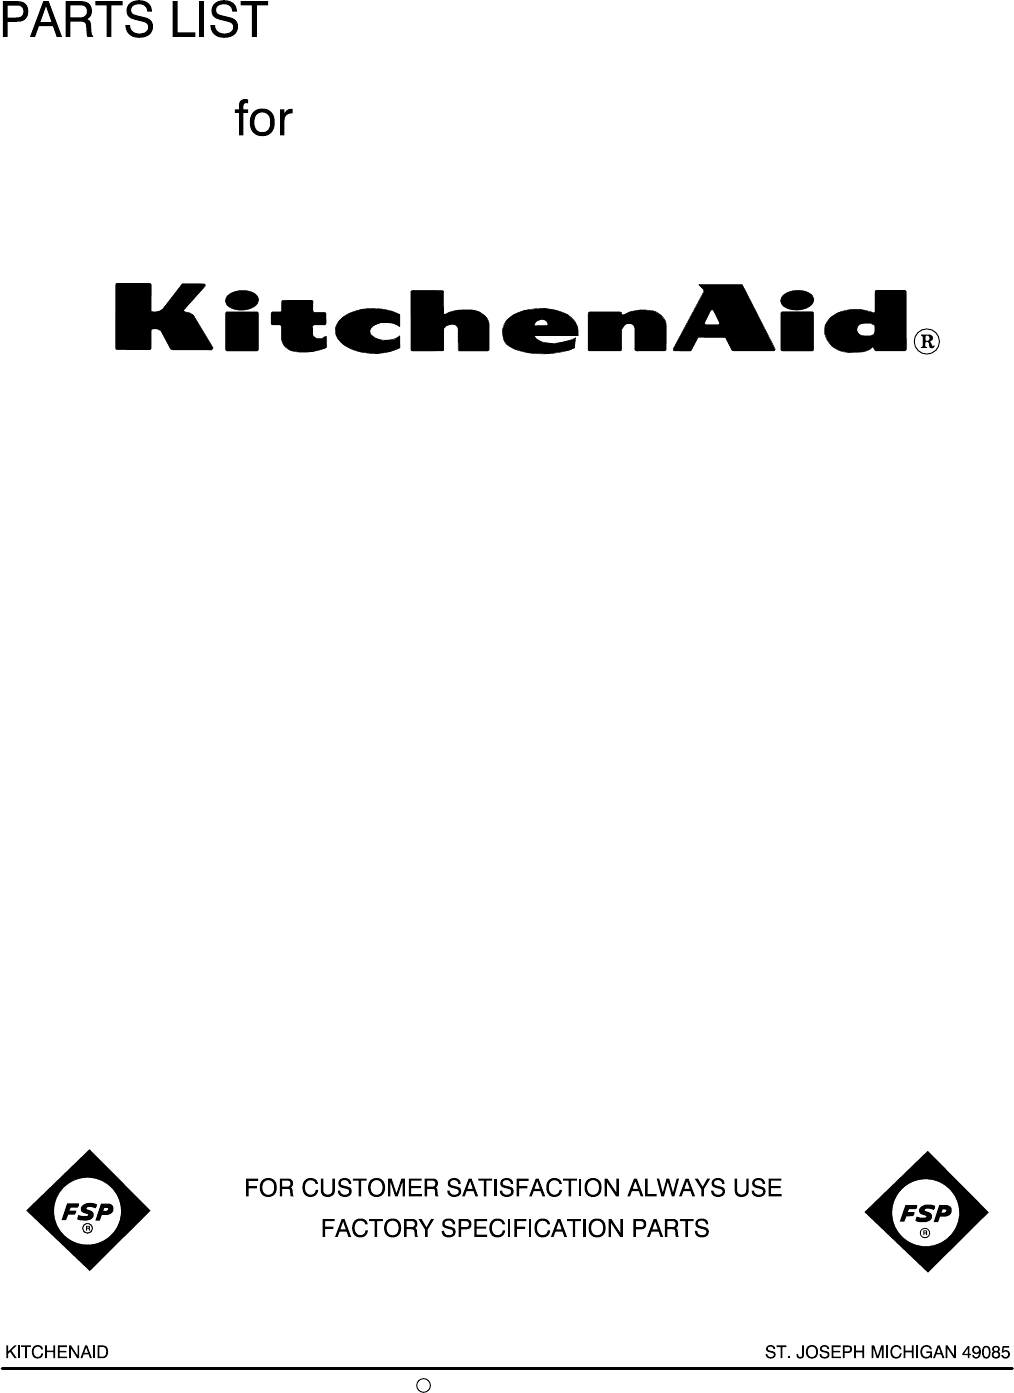 kitchenaid blender kfp740cr0 user guide manualsonline com rh kitchen manualsonline com kitchenaid user manual for model#9755235 kitchenaid user manual dishwasher